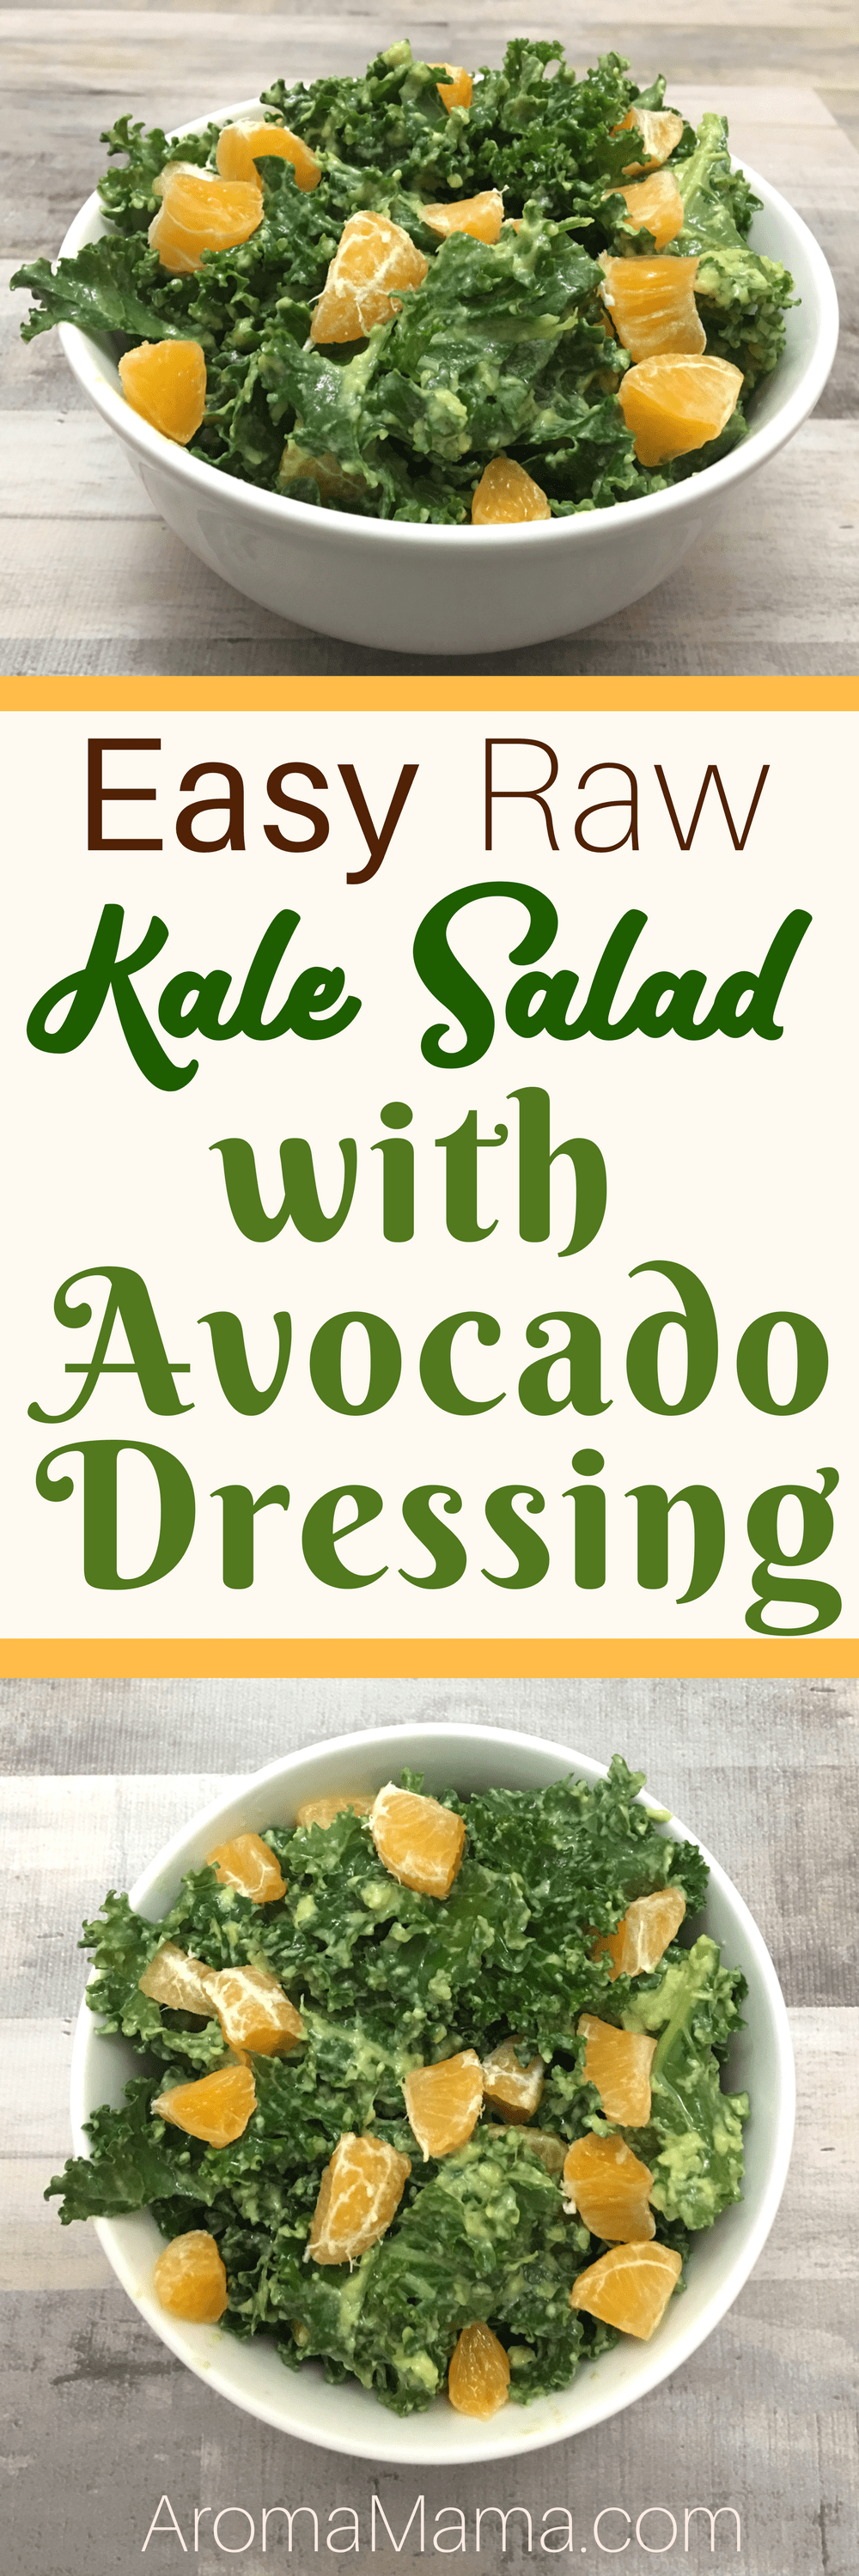 With my busy schedule, I need quick and easy recipes that are also healthy! This Easy Raw Kale Salad with Avocado Dressing is quick, easy, nutrient-dense and so delicious! This salad meets the standards for clean eating, Paleo, AIP, Keto, Vegan, and Whole30 diets.